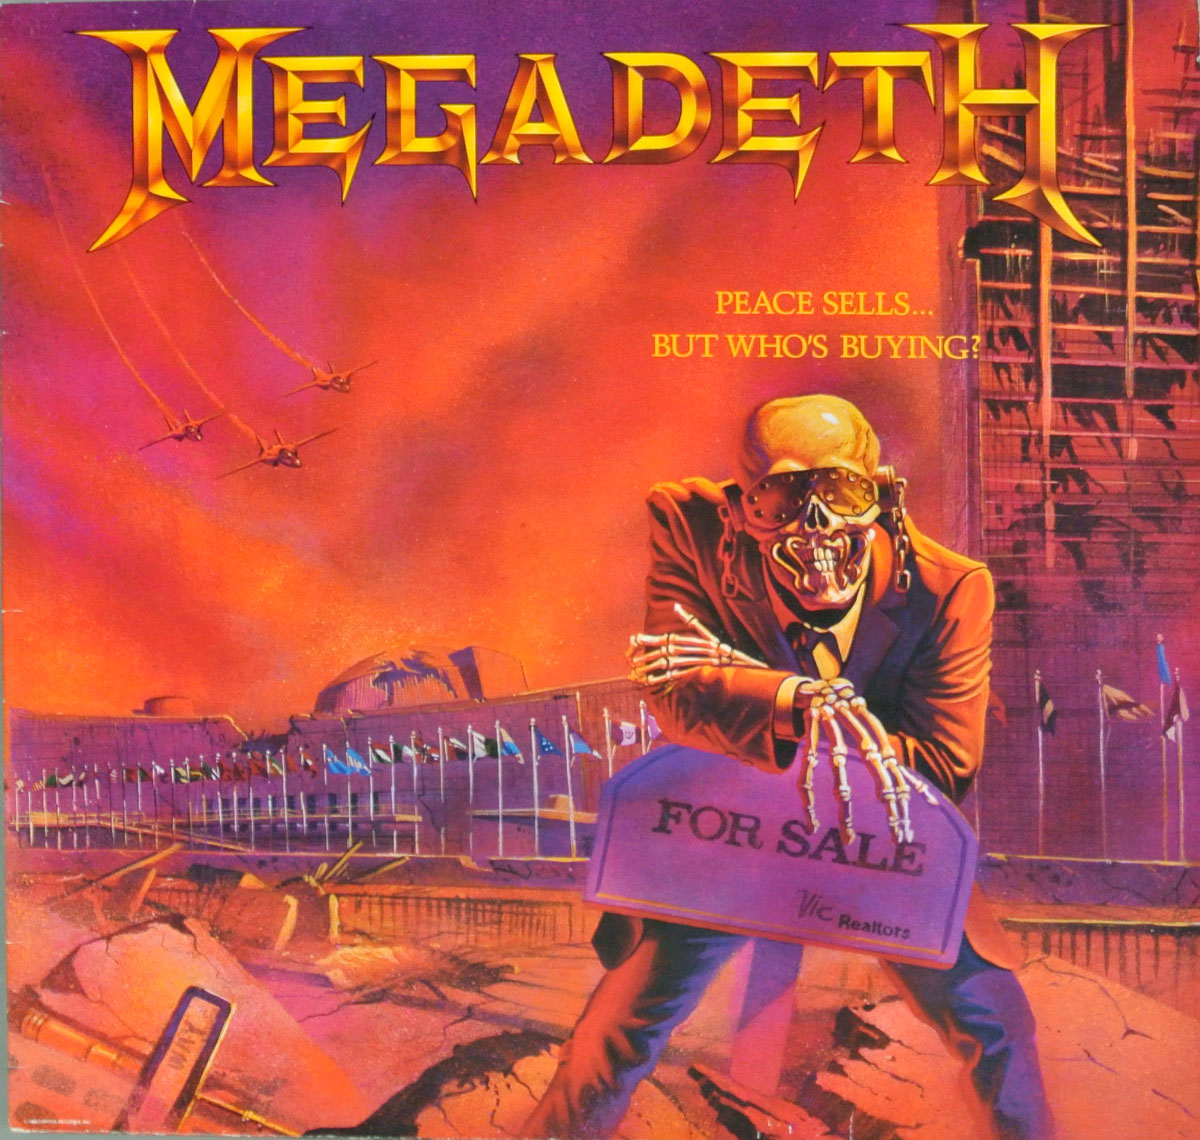 Album Front Cover of MEGADETH PEACE SELLS, BUT WHO'S BUYING?